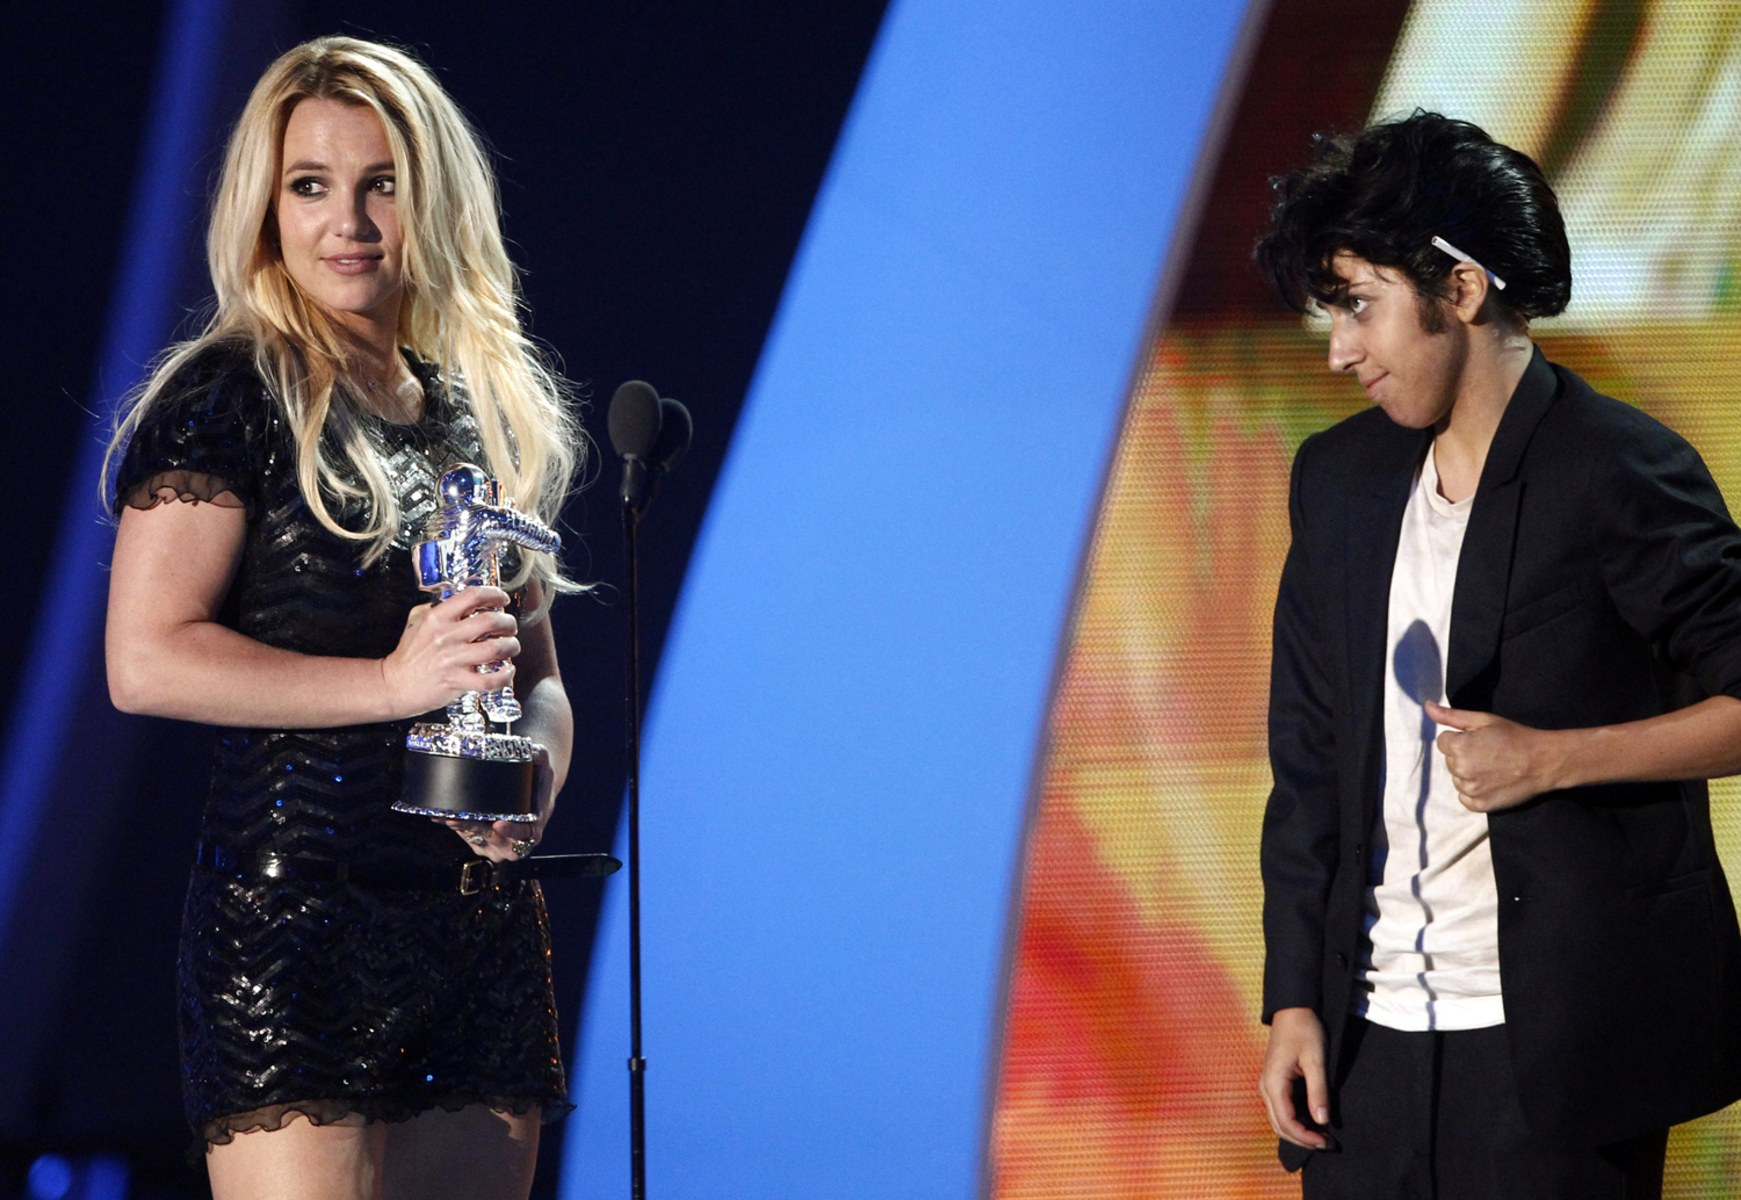 Image: Lady Gaga, Britney Spears